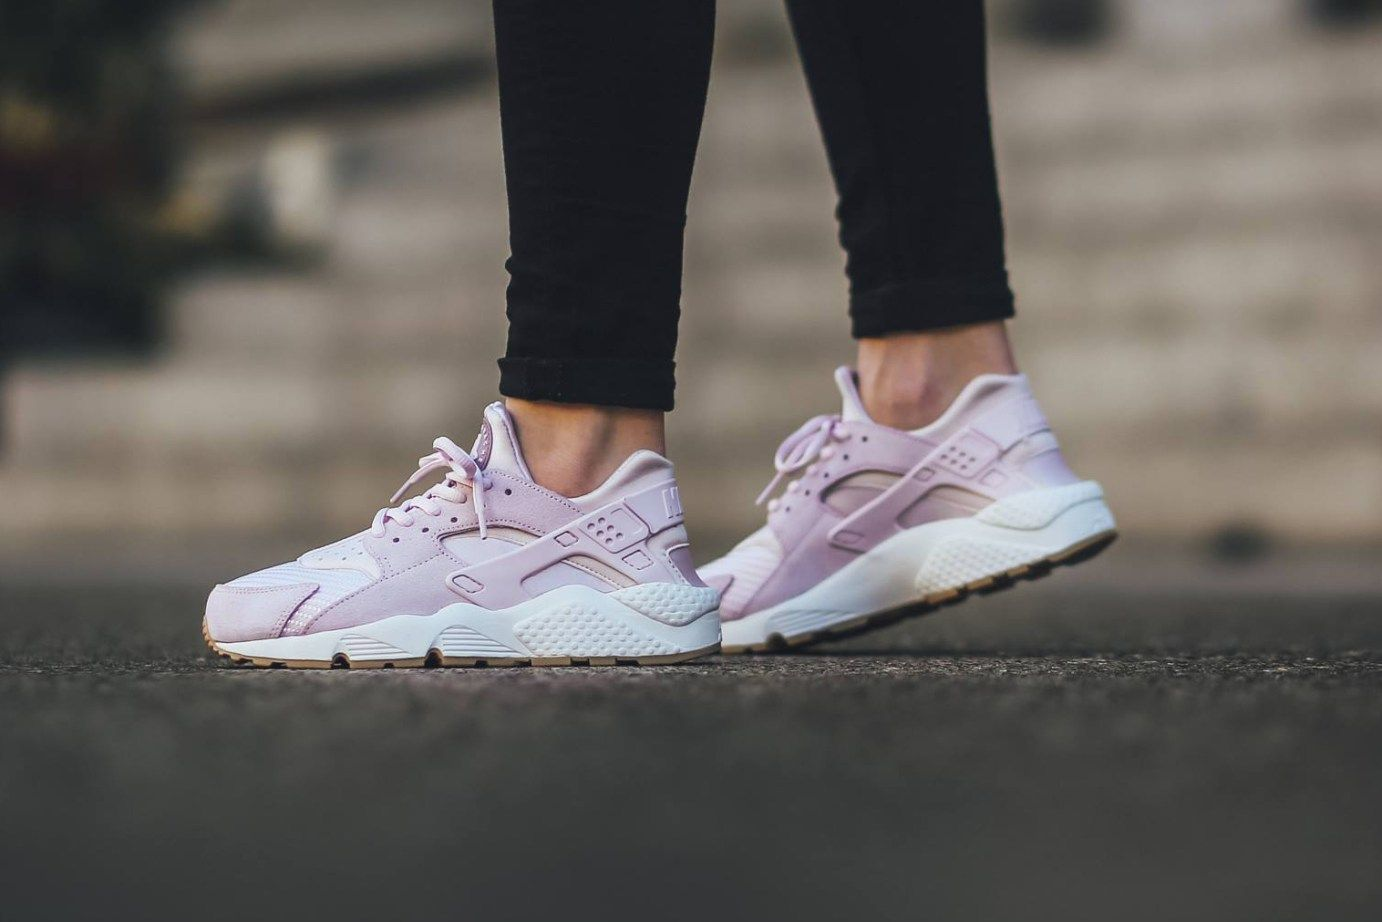 Nike WMNS Air Huarache Run Textile  Bleached Lilac  is part of Nike air huarache - Nike WMNS Air Huarache Run Textile  Bleached Lilac  A sleek, pastel iteration of the fan favorite sneaker